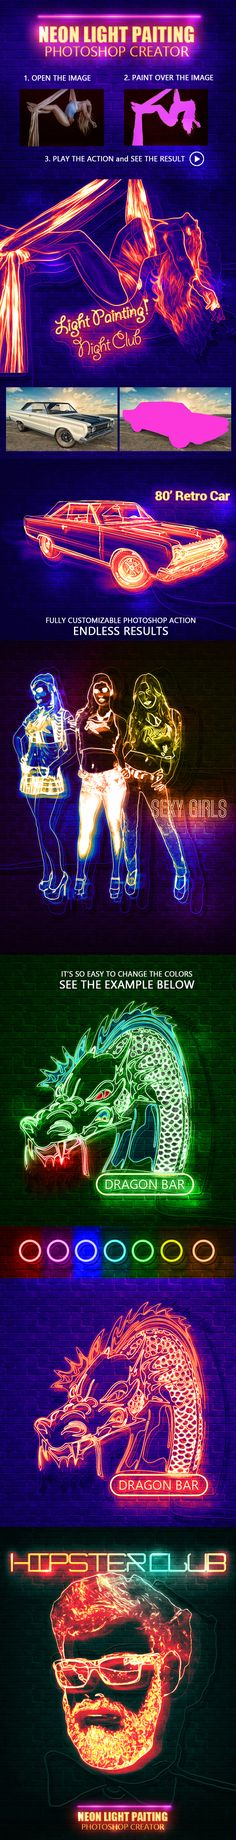 Neon Light Painting Photoshop Action - Photo Effects Actions